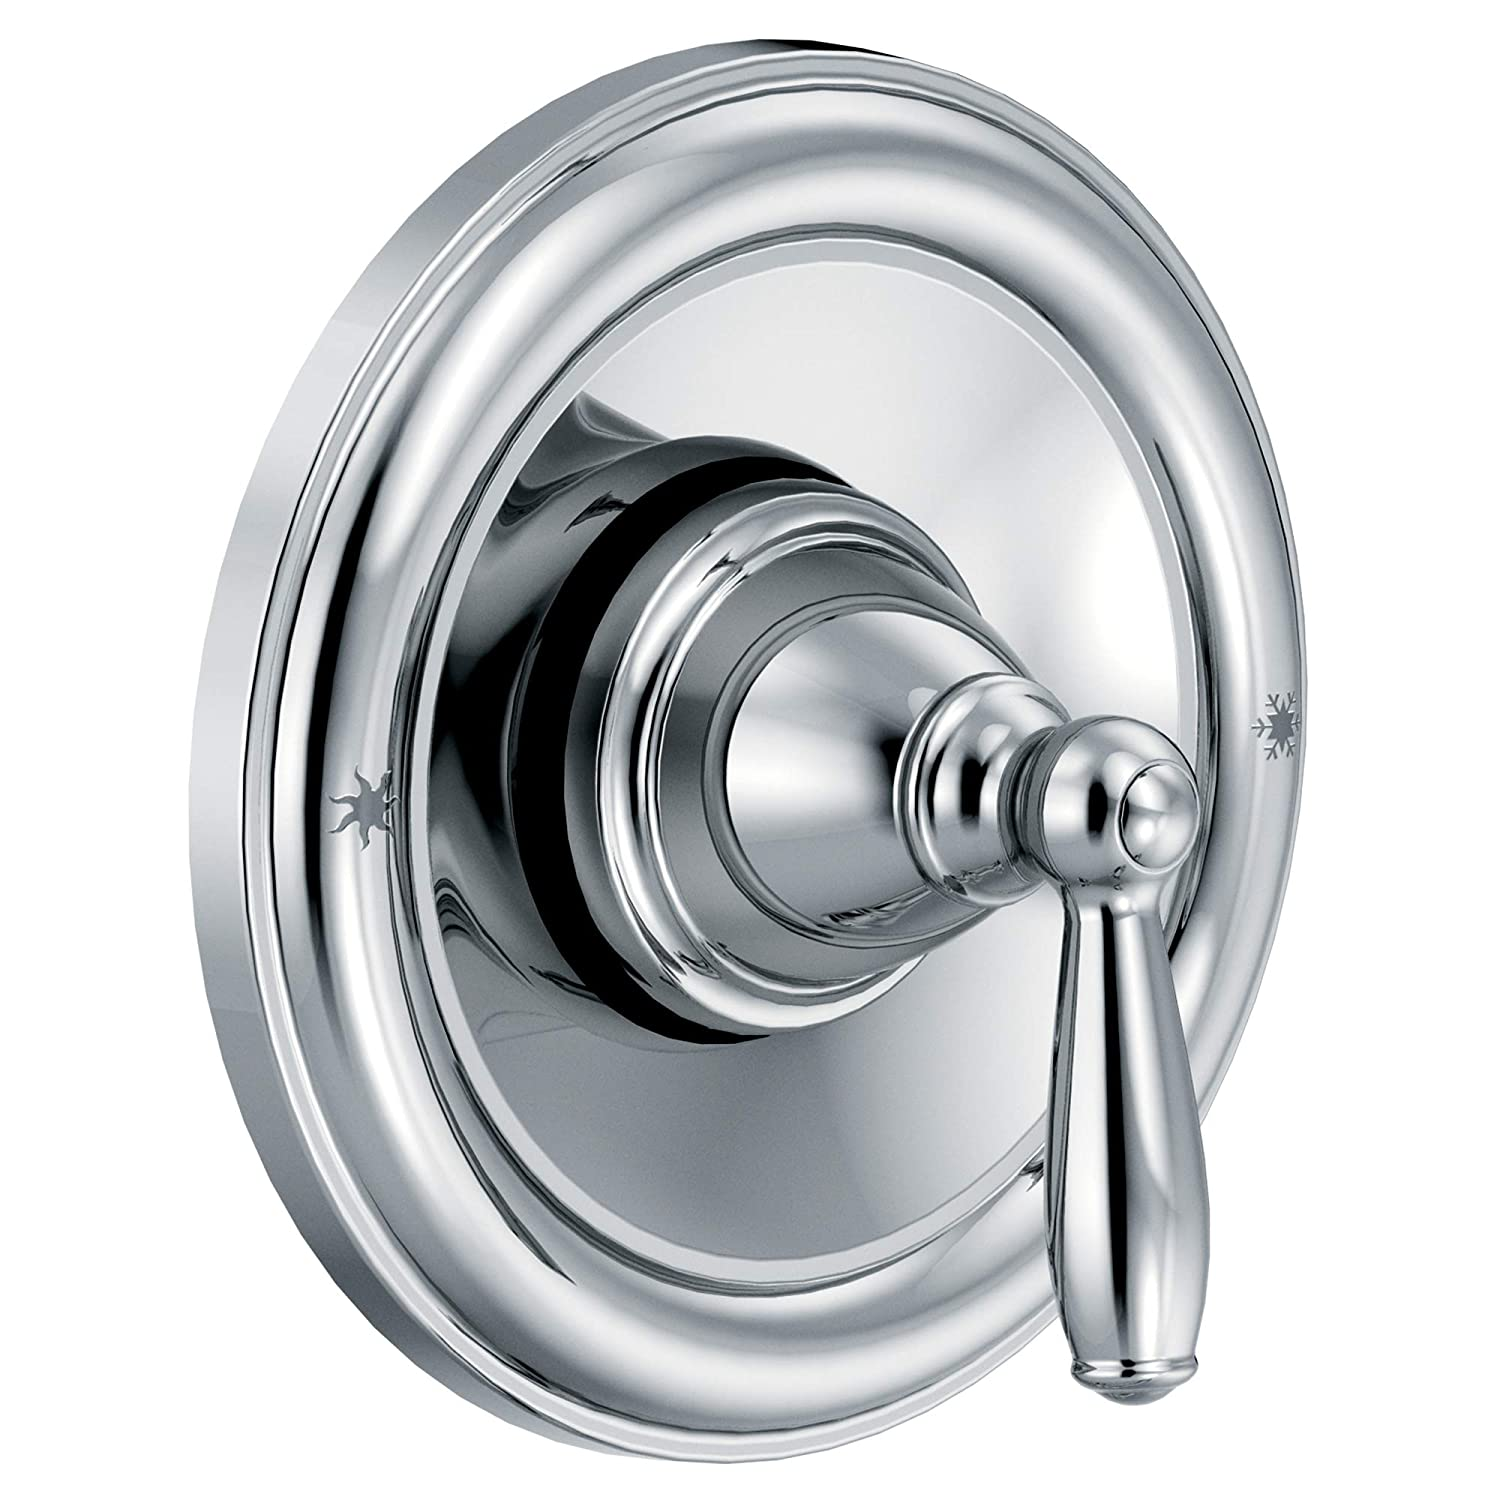 Moen T2151 Brantford Posi-Temp Pressure Balancing Traditional Tub and Shower Valve Trim Kit Valve Required, Chrome